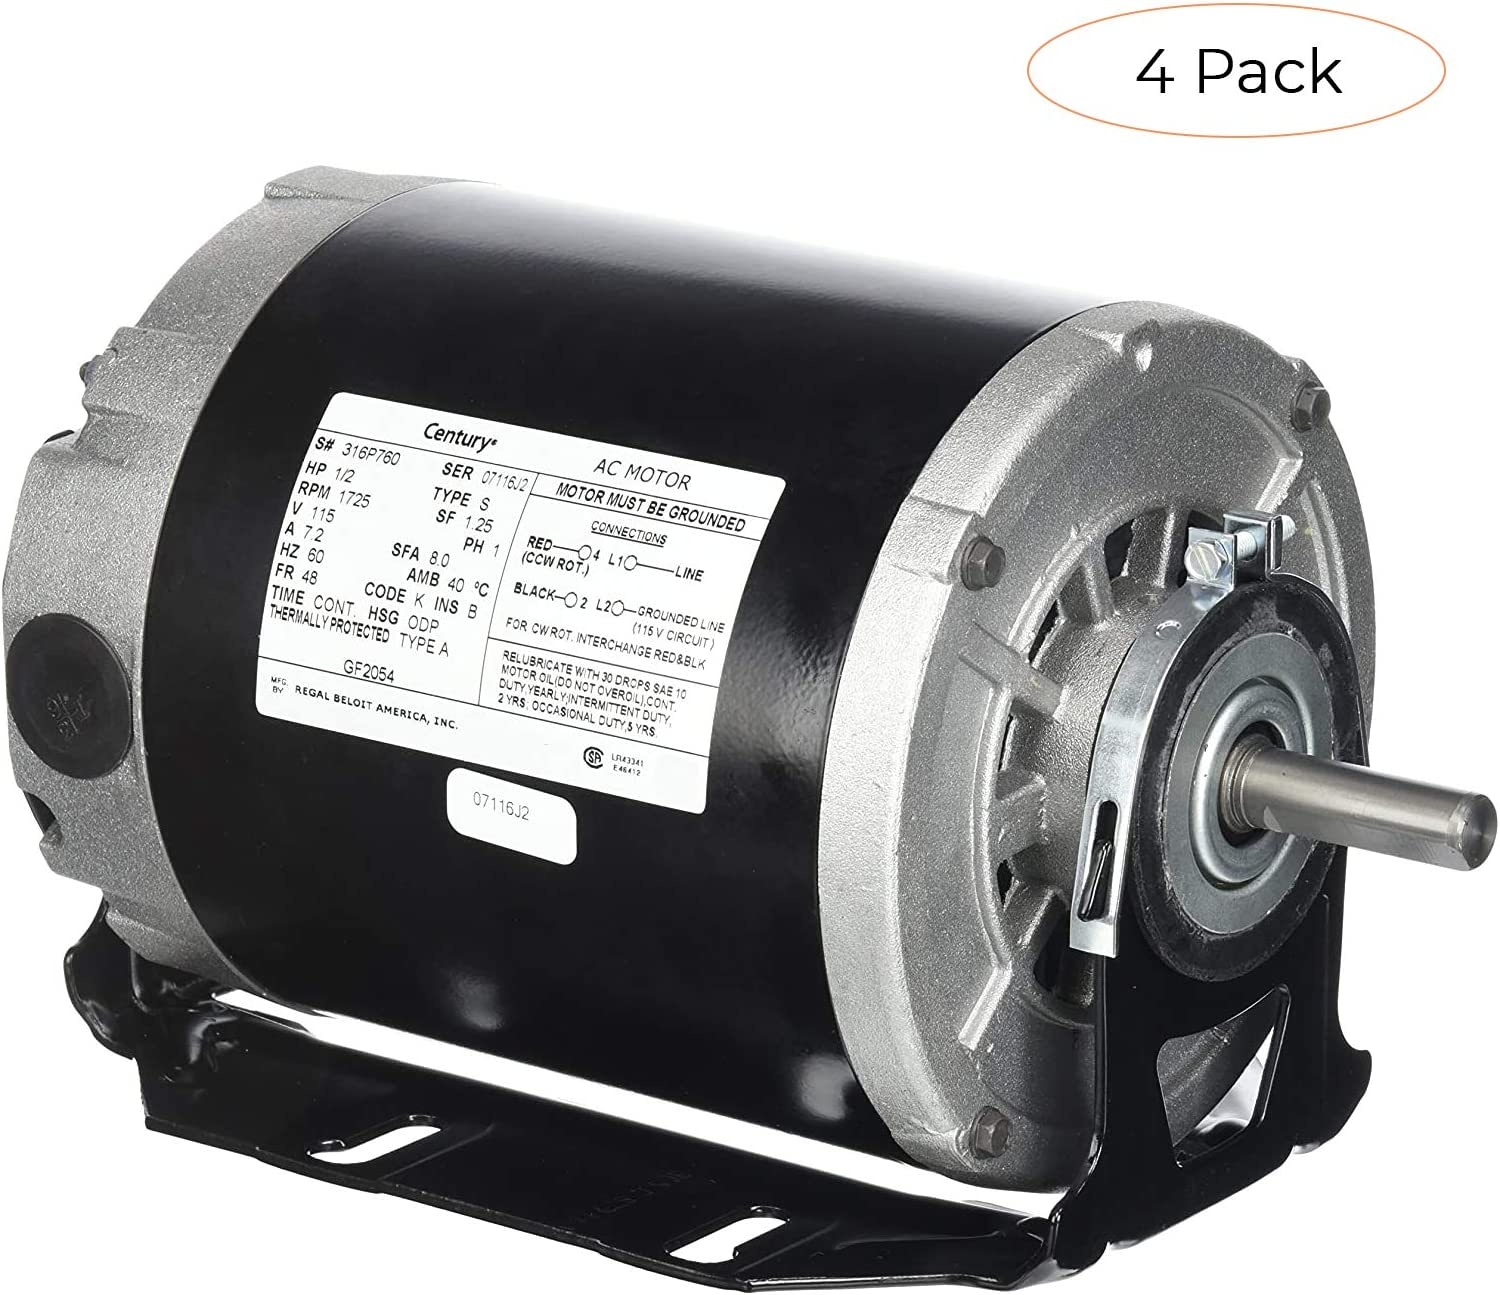 [SCHEMATICS_4US]  Century formerly AO Smith GF2054 1/2 hp, 1725 RPM, 115 volts, 48/56 Frame,  ODP, Sleeve Bearing Belt Drive Blower Motor (Fоur Расk) - - Amazon.com | 115 Volt Ac Motor Wiring Diagram |  | Amazon.com